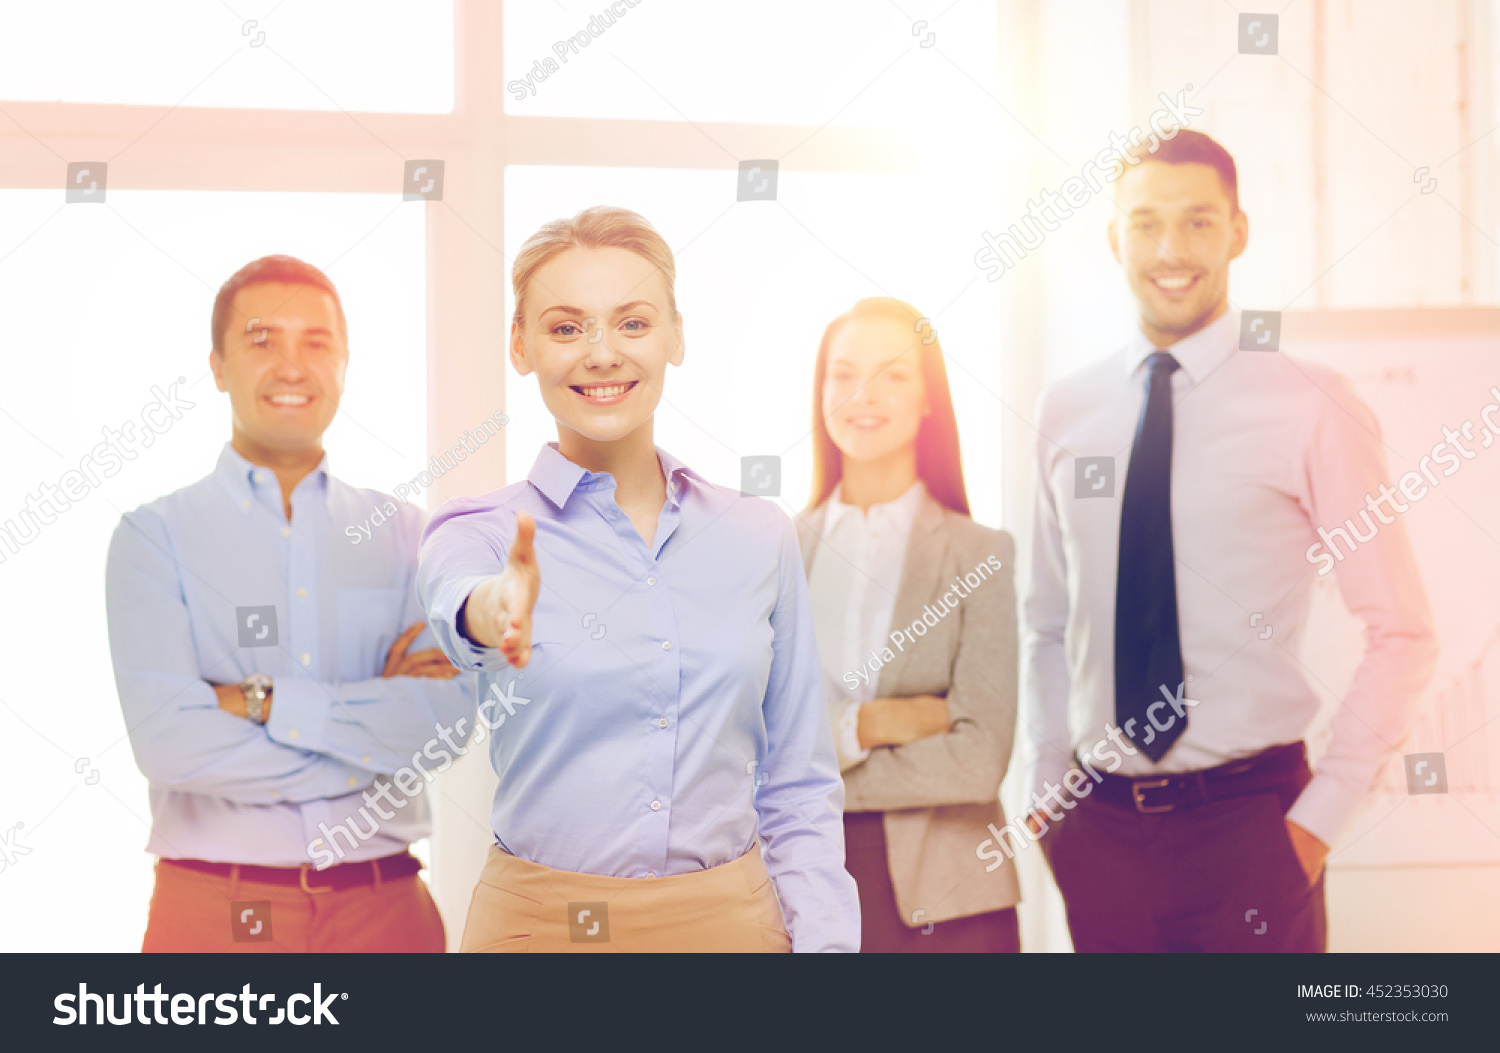 citizen office concept. Business And Office Concept - Smiling Beautiful Businesswoman Ready For Handshake With Team In Citizen